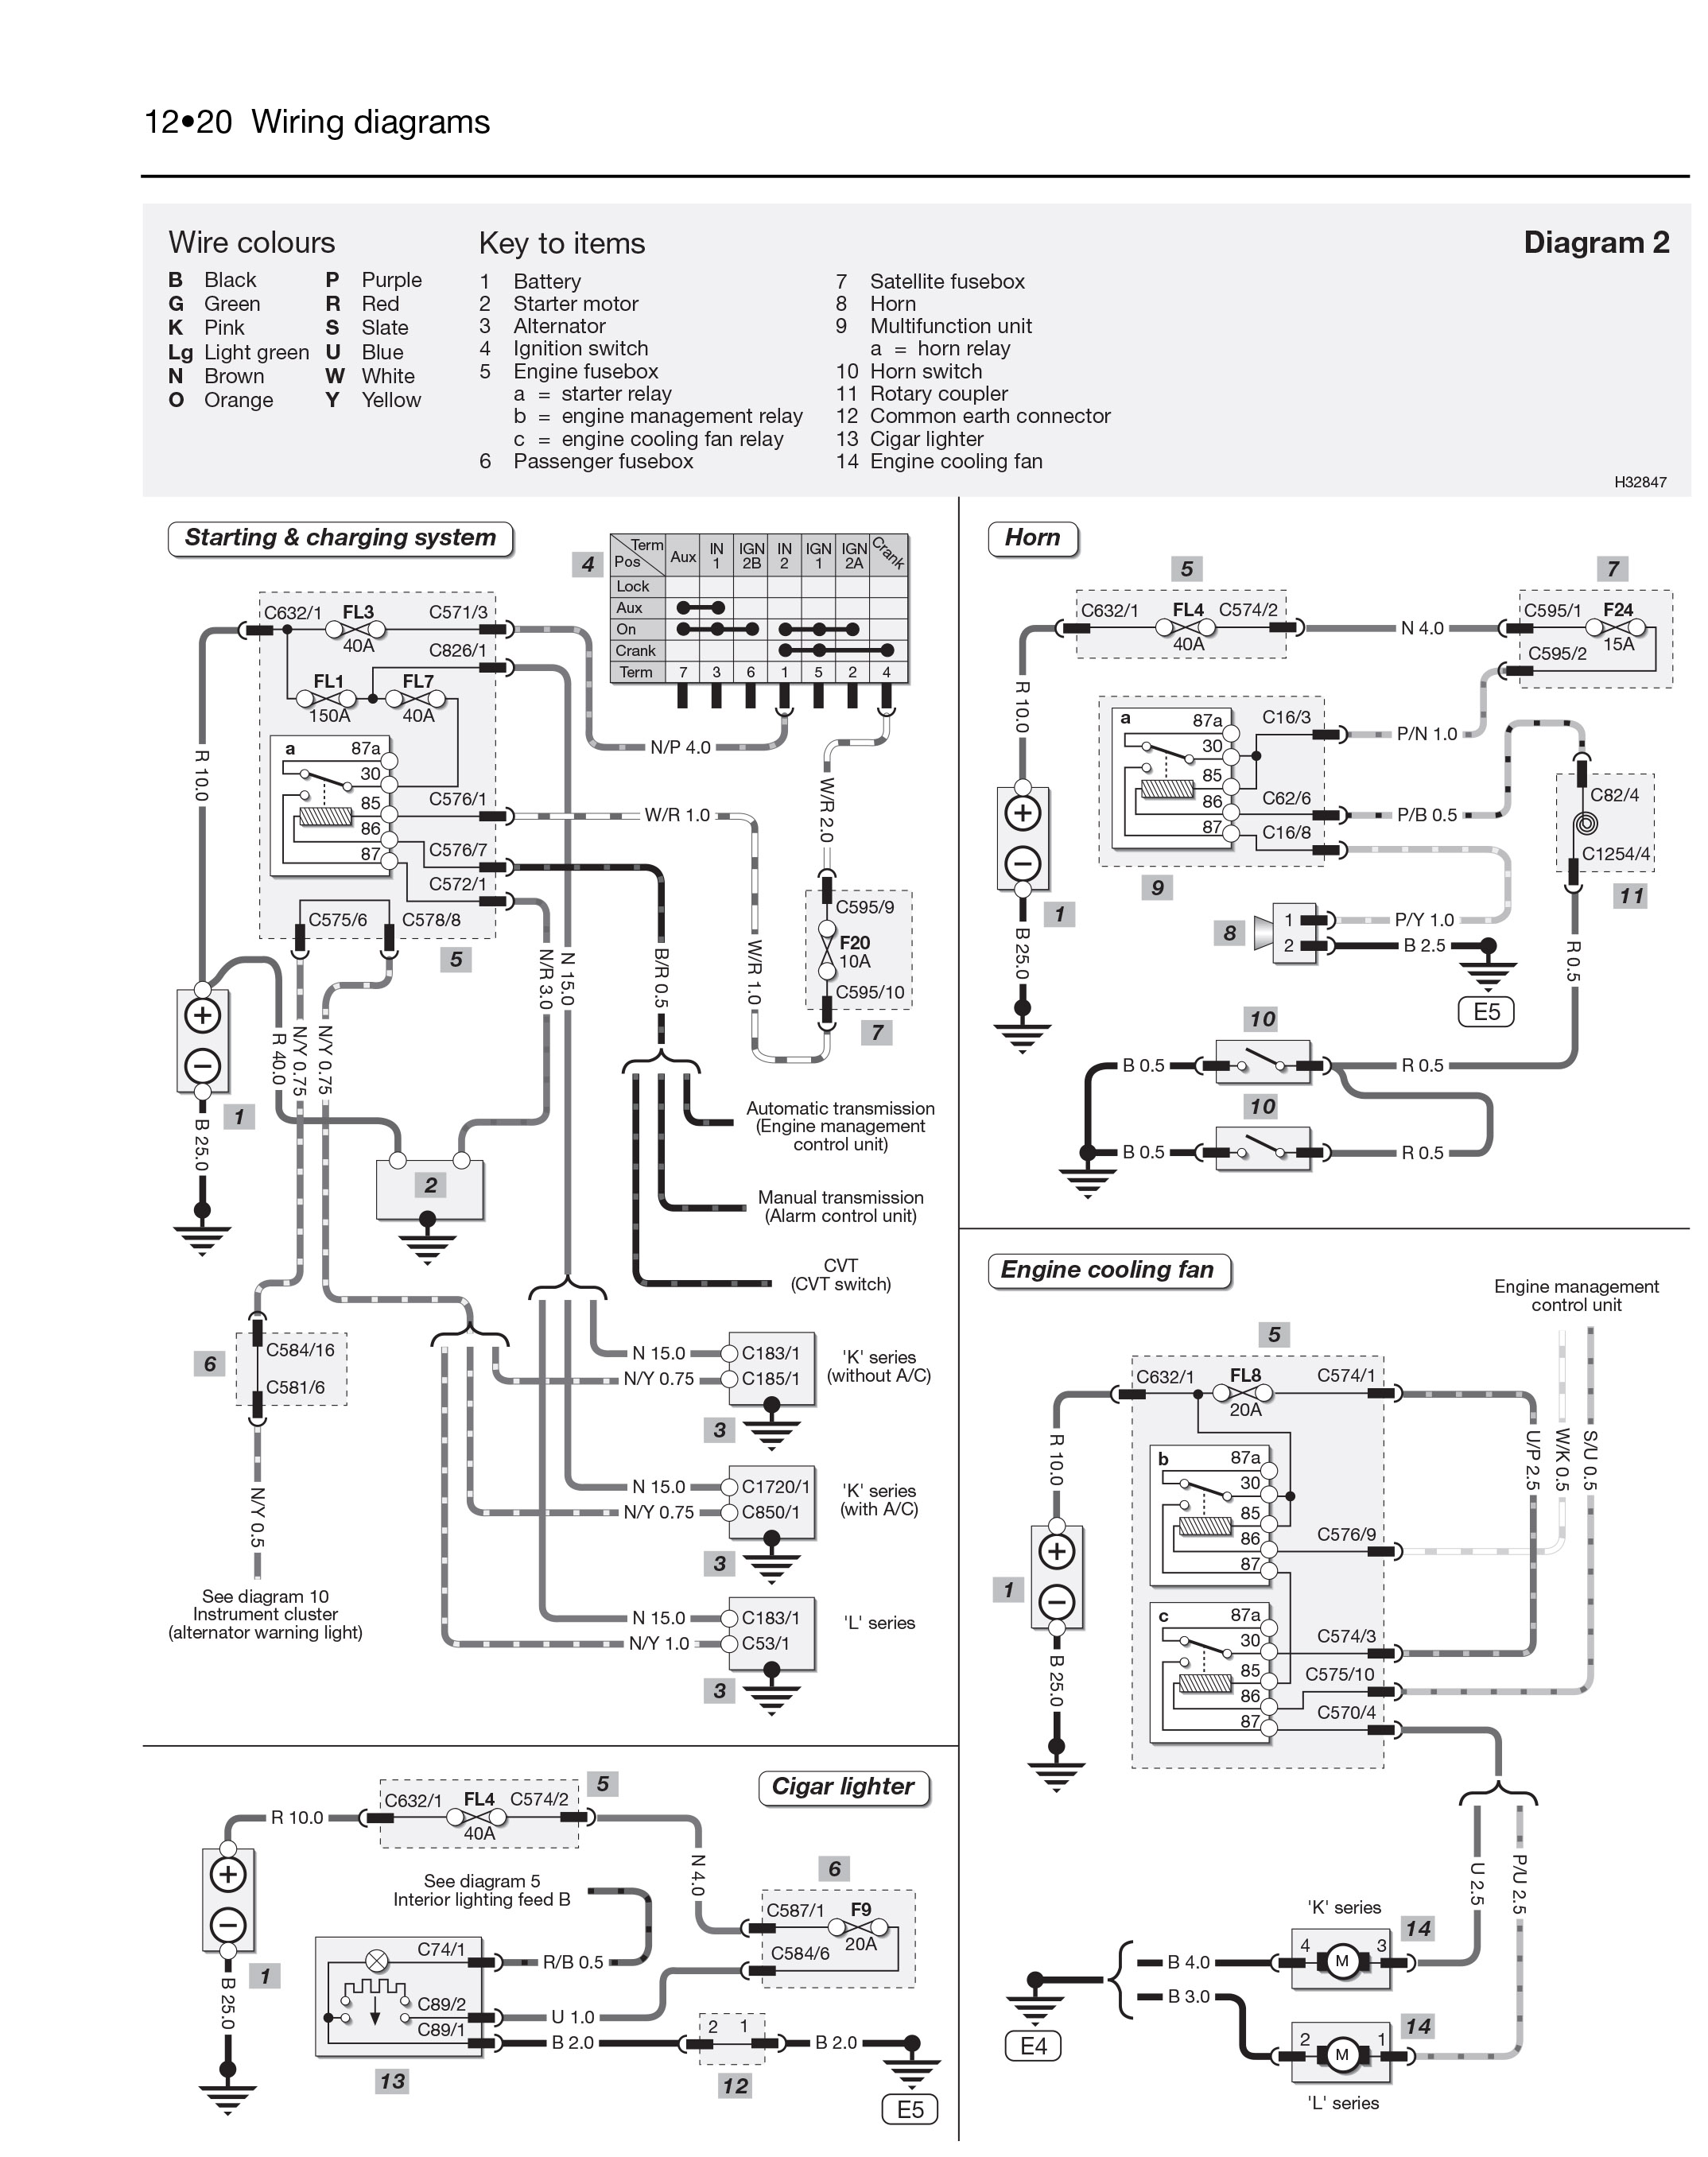 [ZTBE_9966]  011 Rover 25 Central Locking Wiring Diagram | Wiring Library | Rover 75 Central Locking Wiring Diagram |  | Wiring Library